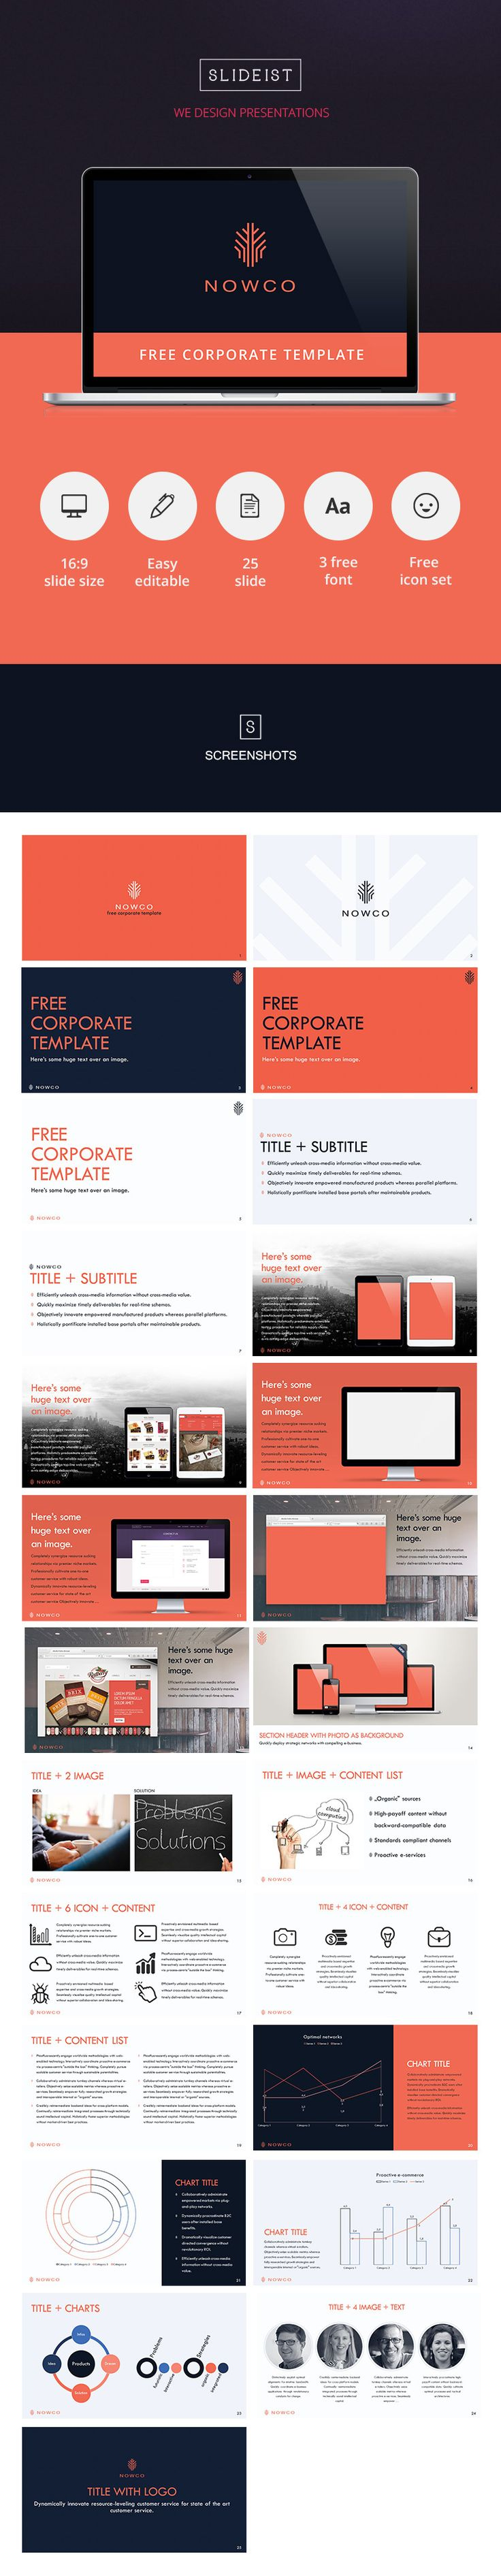 best ideas about powerpoint format interesting nowco powerpoint presentation template